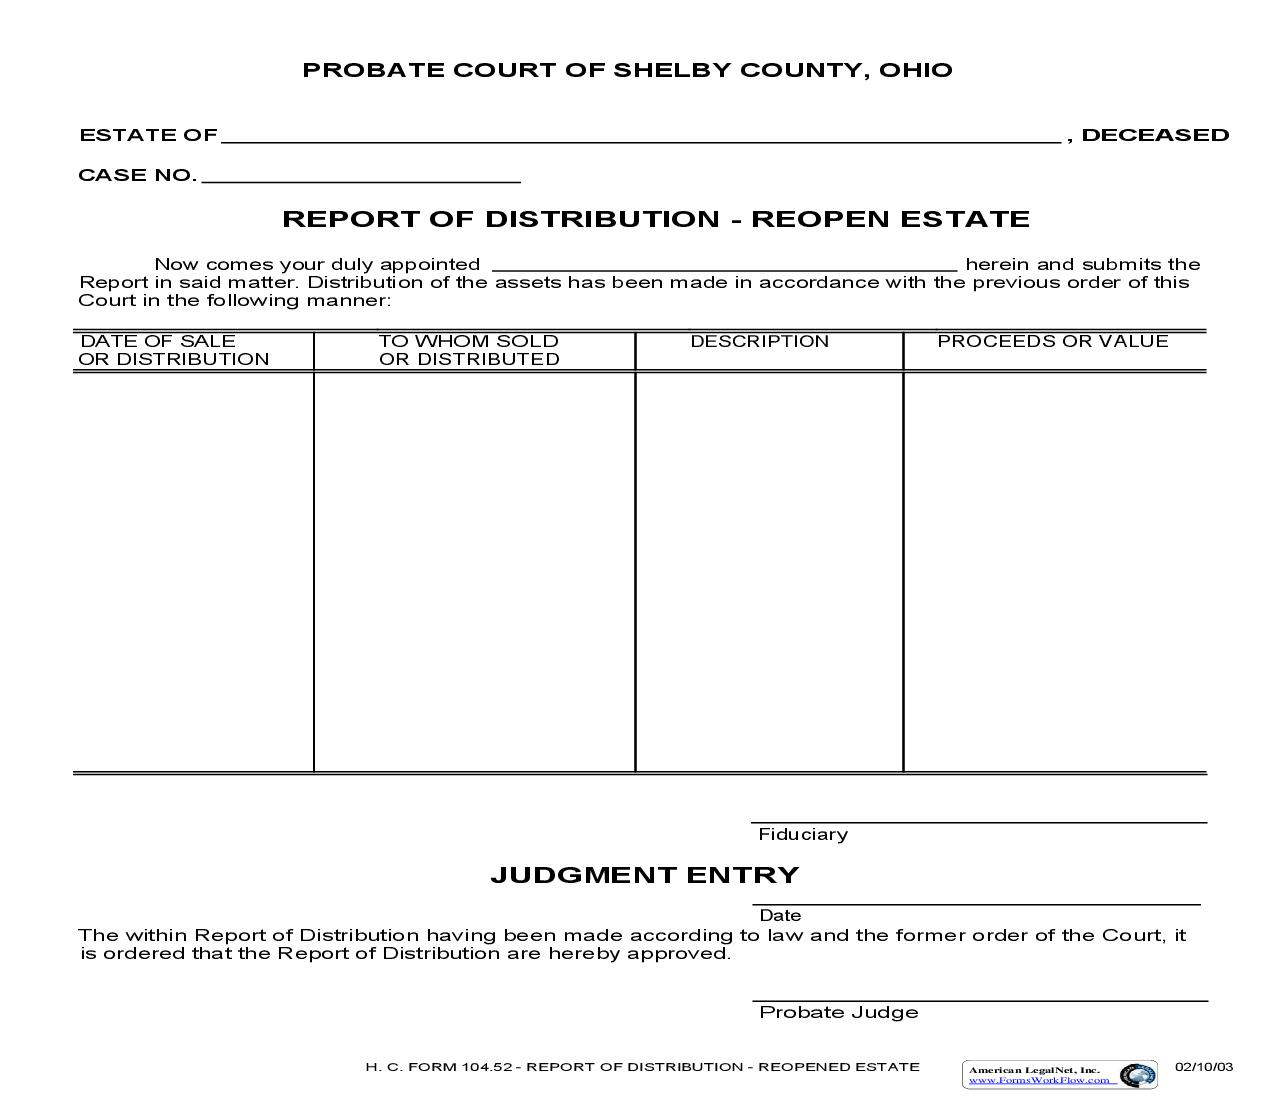 Report Of Distribution Reopen Estate {104.52} | Pdf Fpdf Doc Docx | Ohio